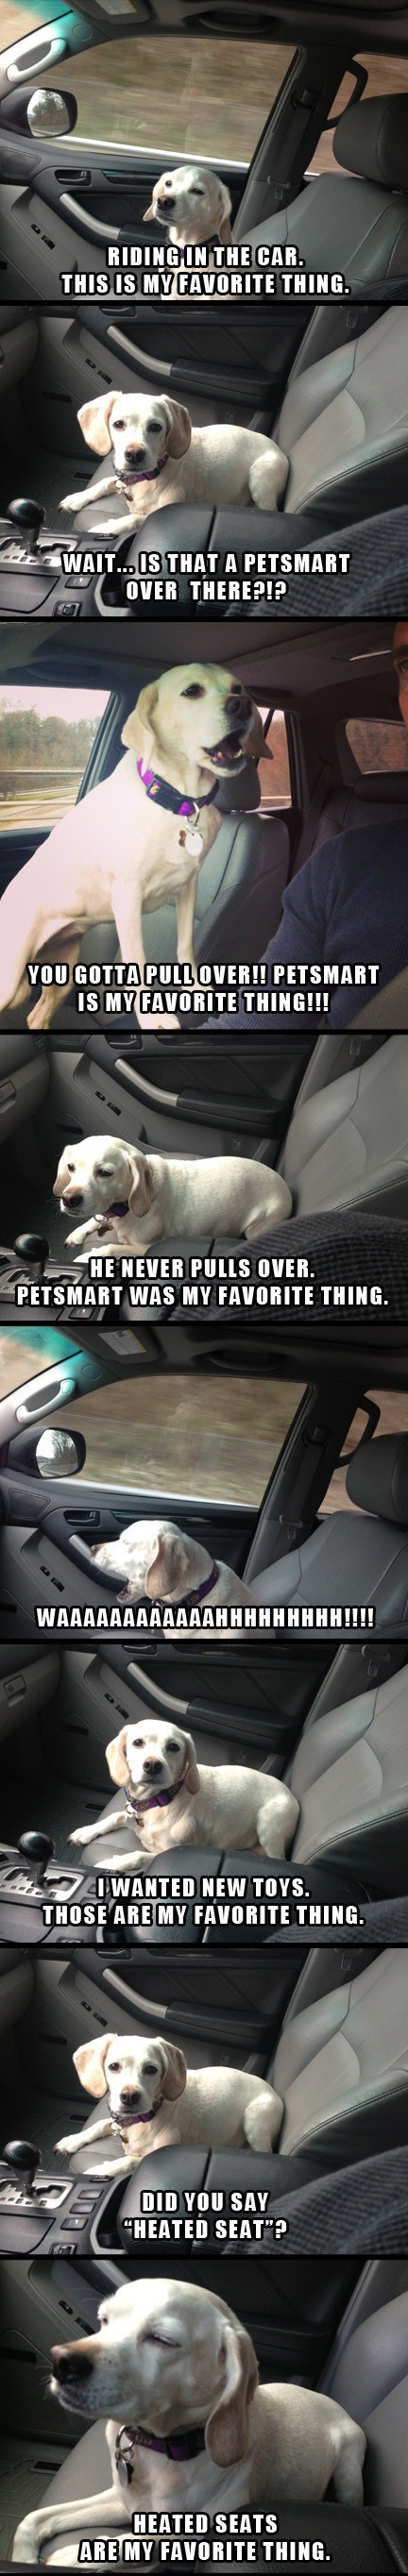 """Vehicle door - RIDING IN THE CAR. THIS IS MY FAVORITE THING WAIT.. IS THAT A PETSMART OVER THERE?I? YOU GOTTA PULOVER!! PETSMART IS MY FAVORITE THING!!! HENEVER PULLS OVER. PETSMART WAS MY FAVORITE THING. WAAAAAAAAAAAAHHHHHHHHH!!!! IWANTED NEW TOYS. THOSE ARE MY FAVORITE THING. DID YOU SAY CHEATED SEAT""""? HEATED SEATS ARE MY FAVORITE THING DD"""